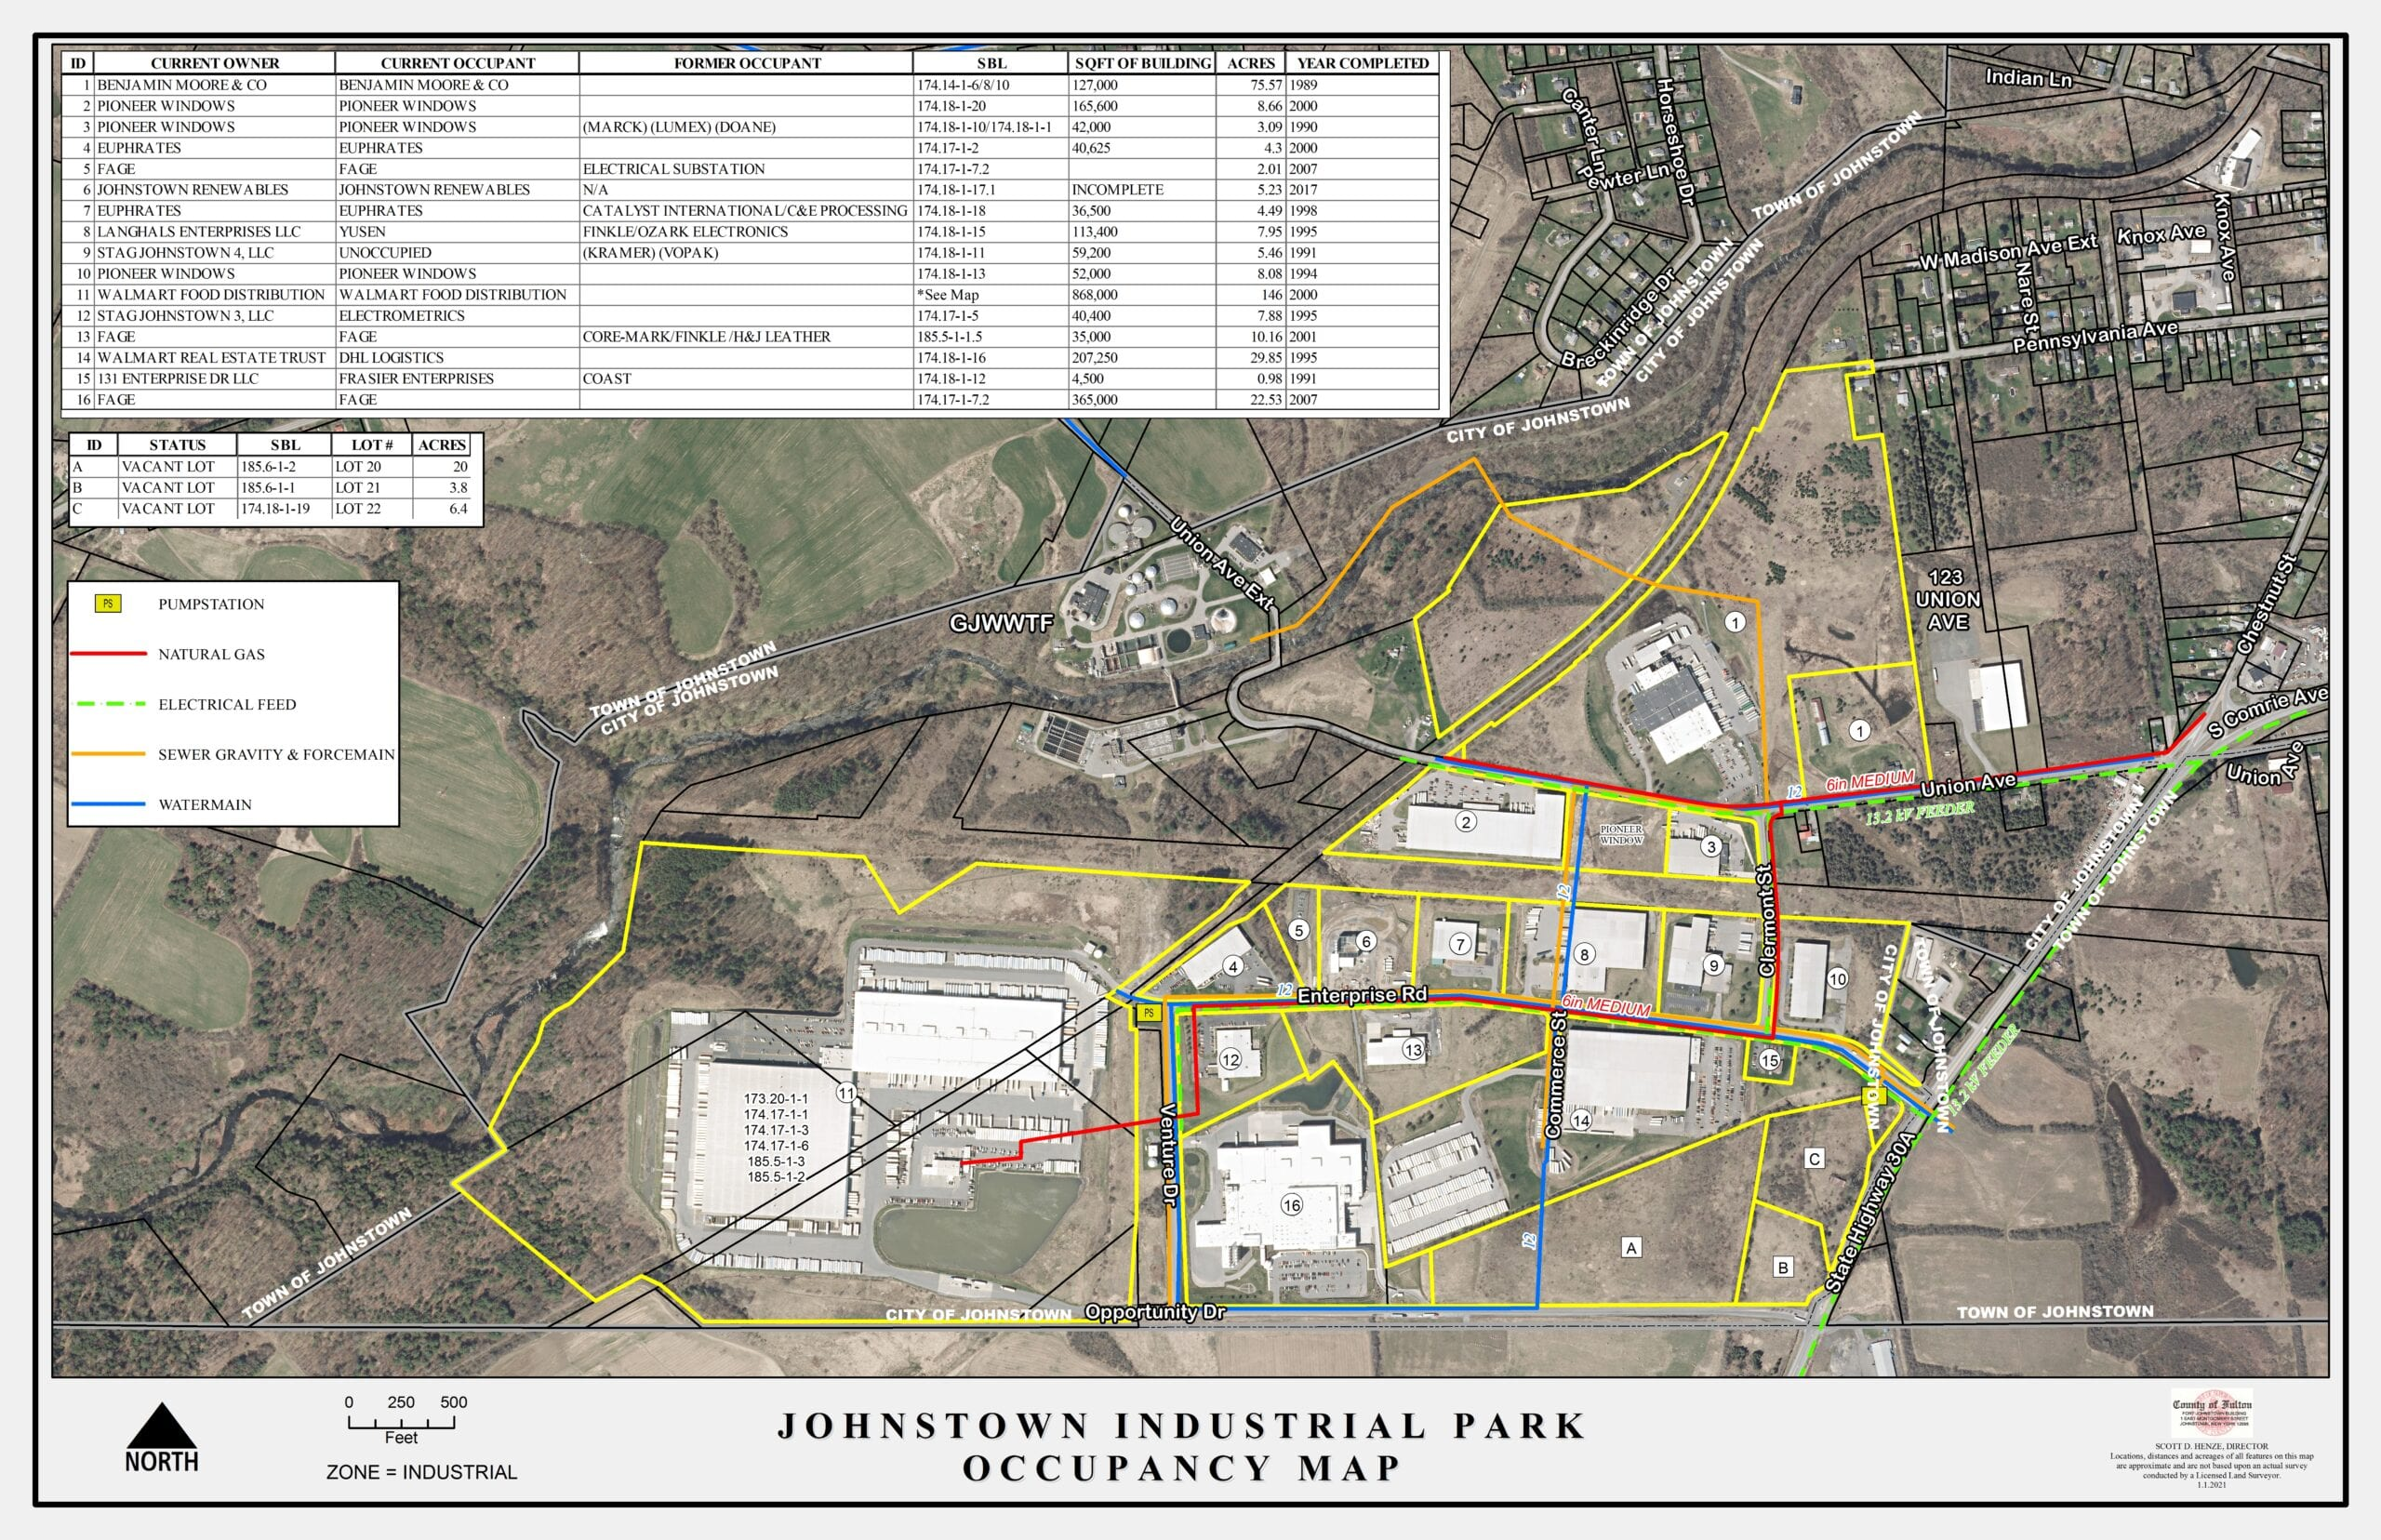 Johnstown Industrial Park